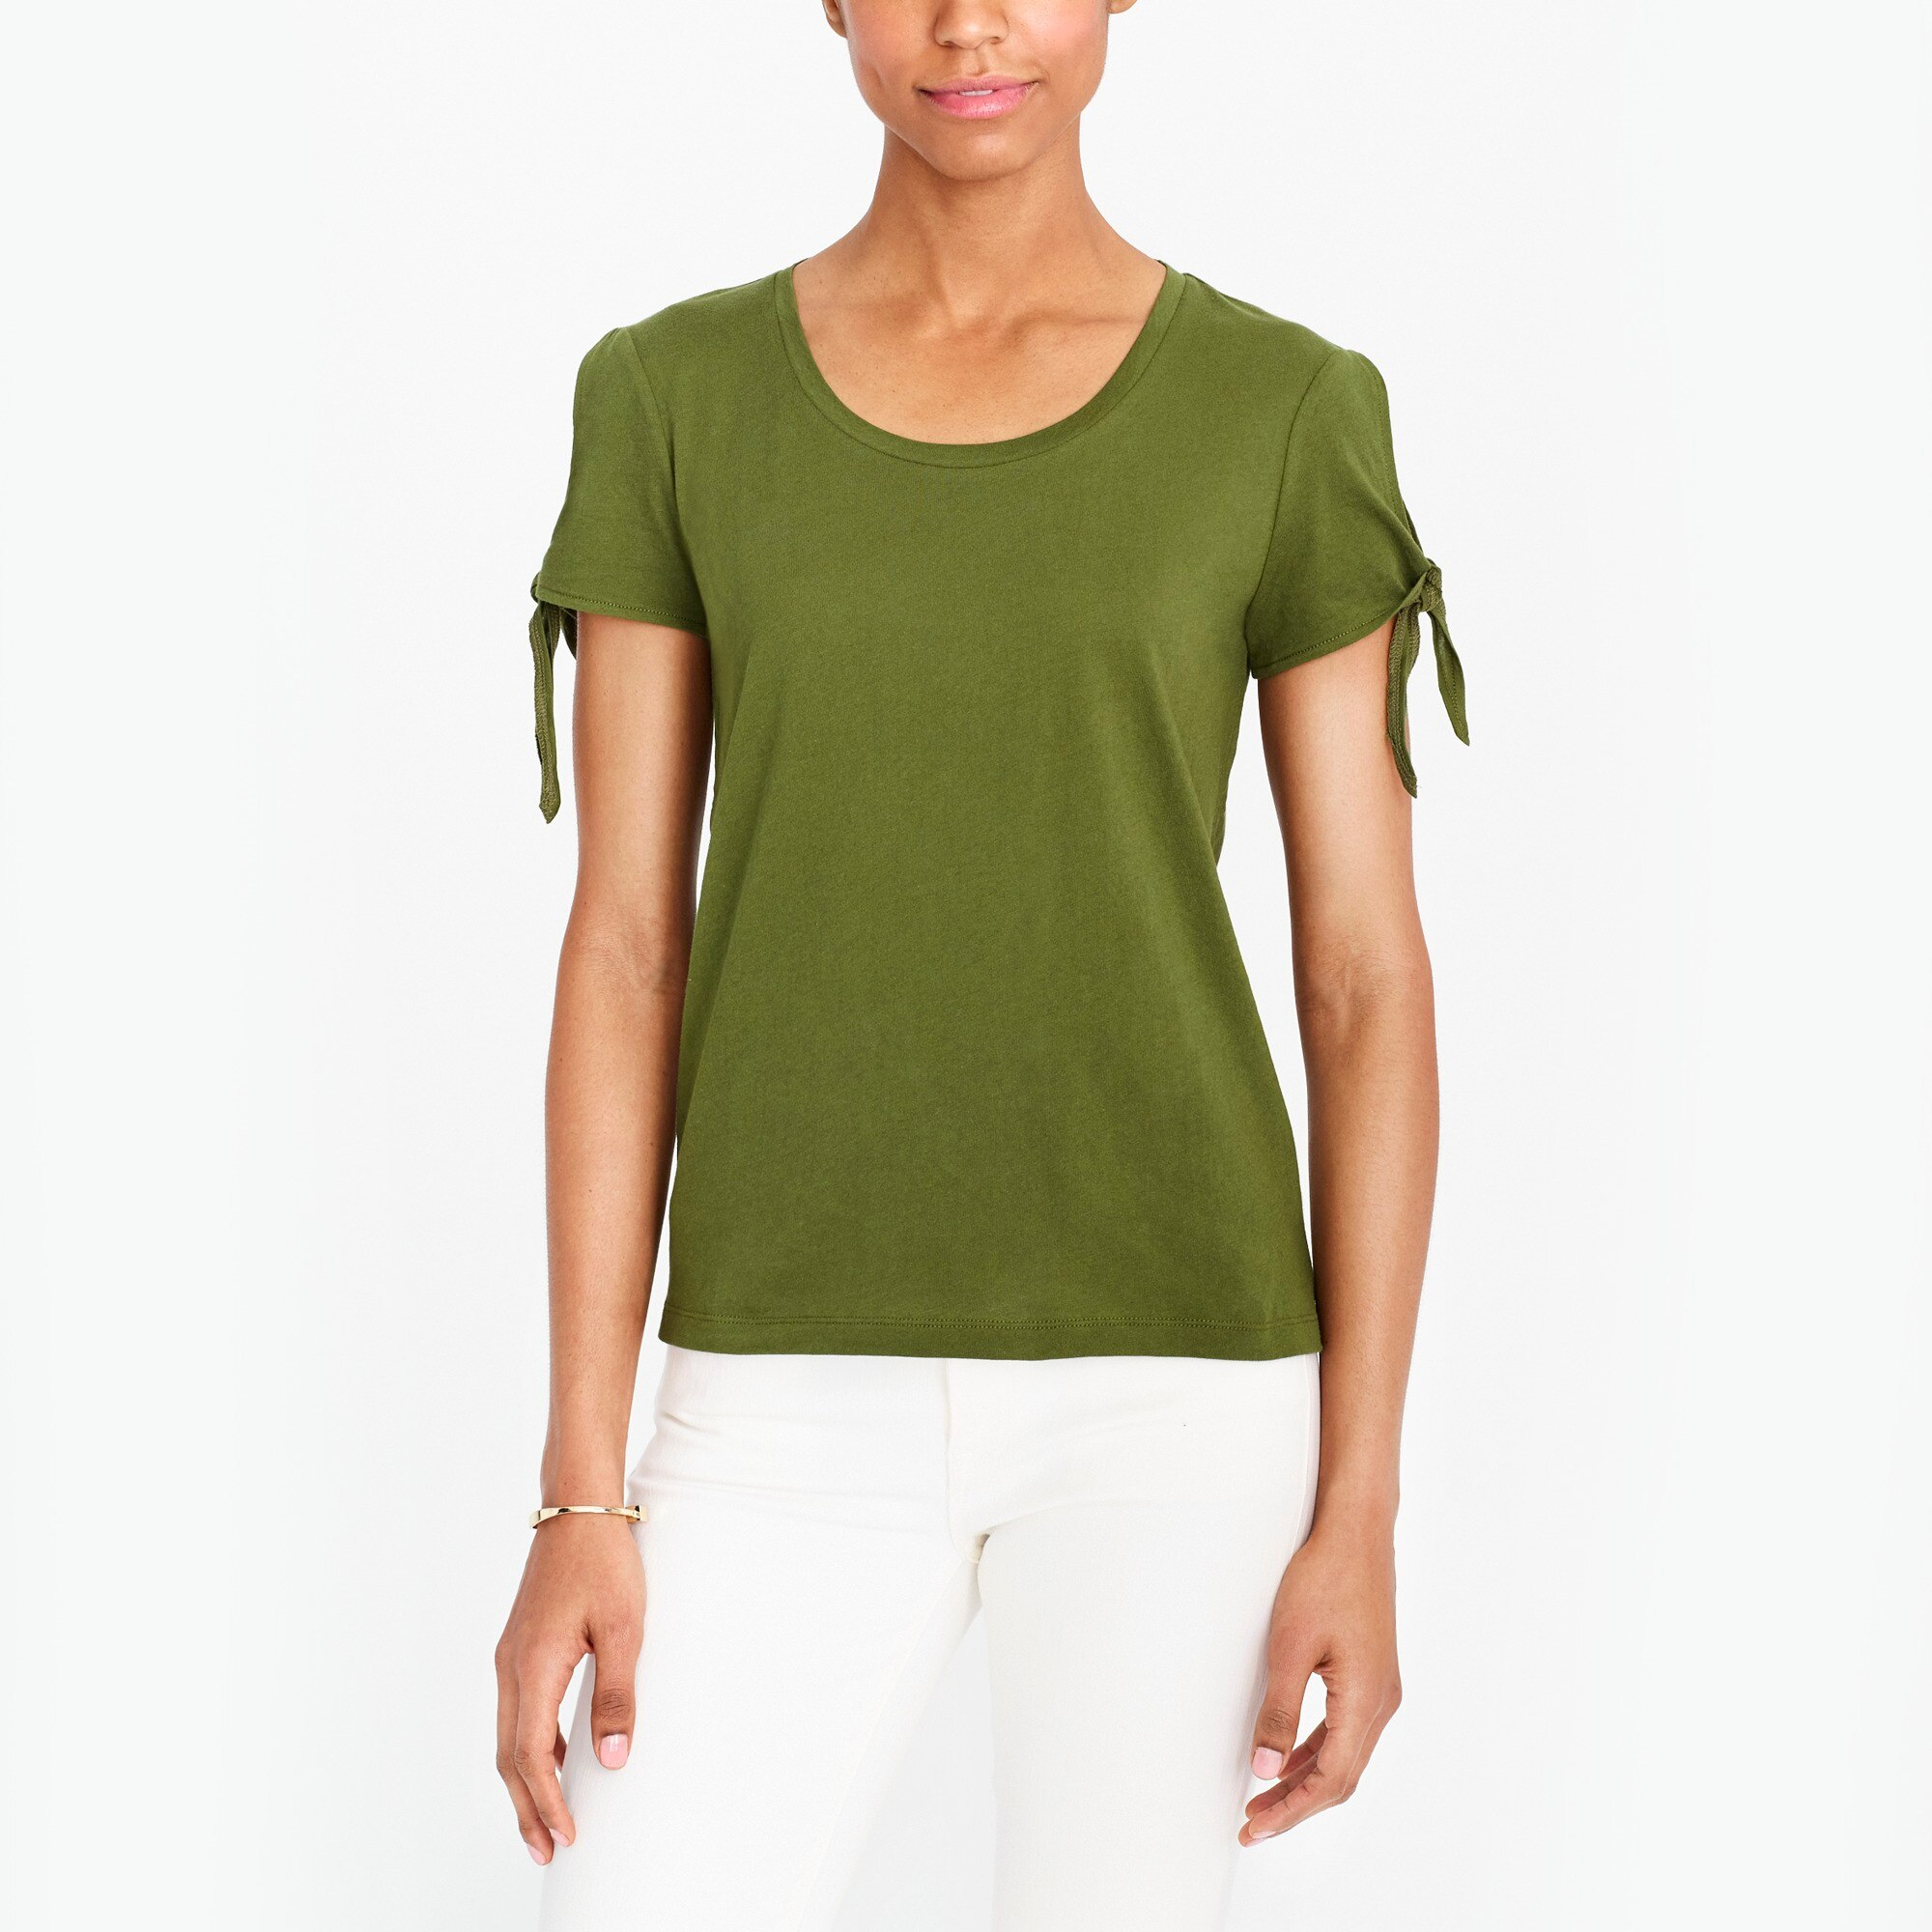 Tie-shoulder T-shirt factorywomen the score: tie-shoulder t-shirts and sidewalk skirts c